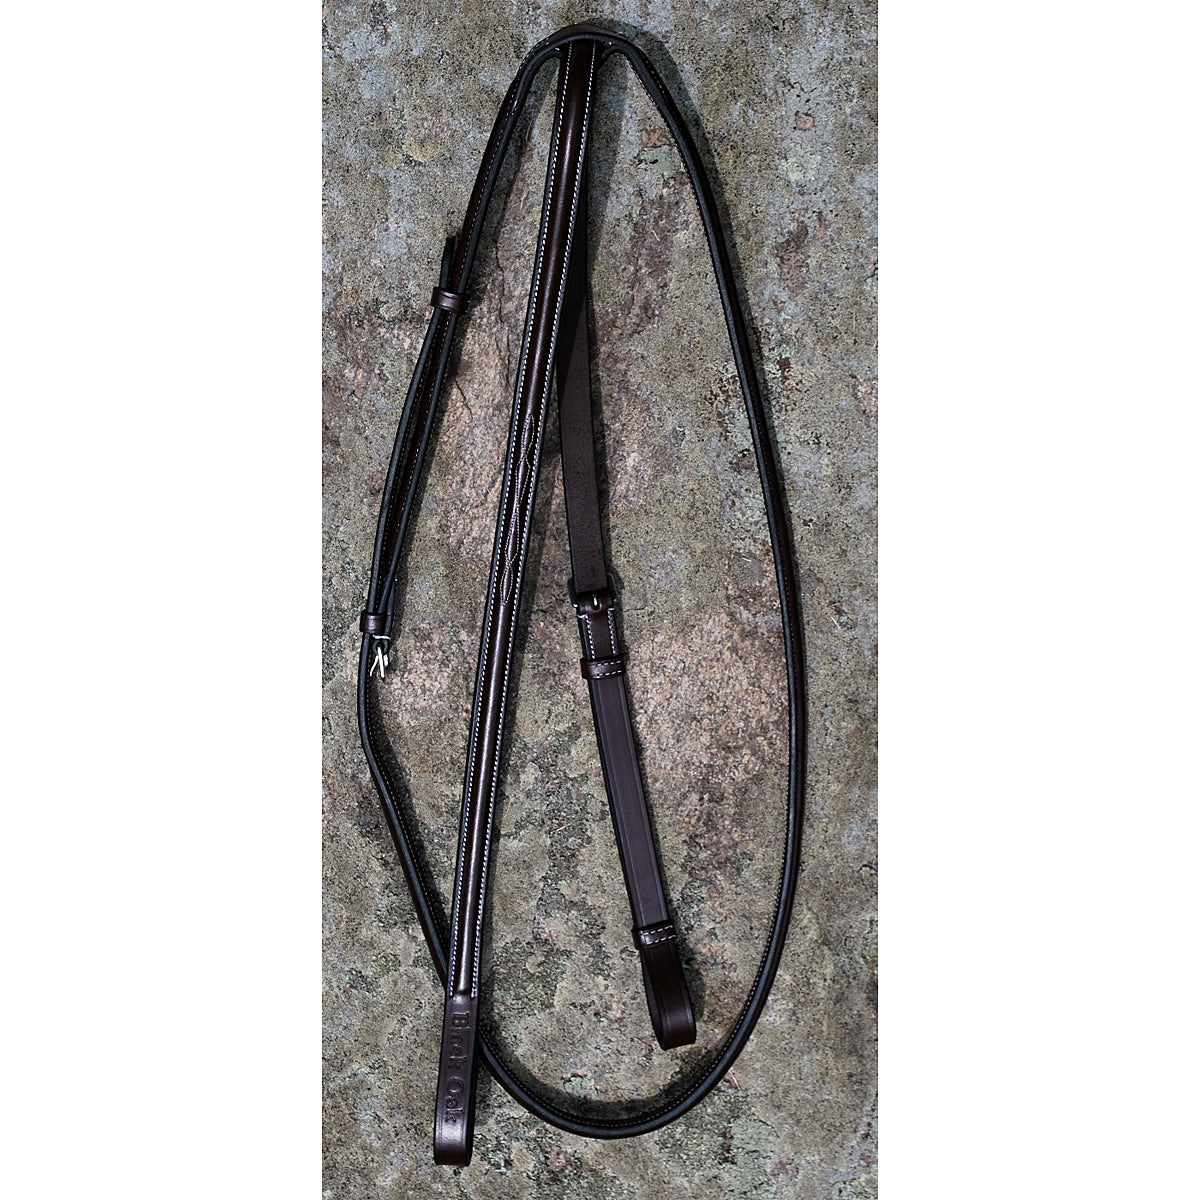 Black Oak by KL Select Square Raised Standing Martingale